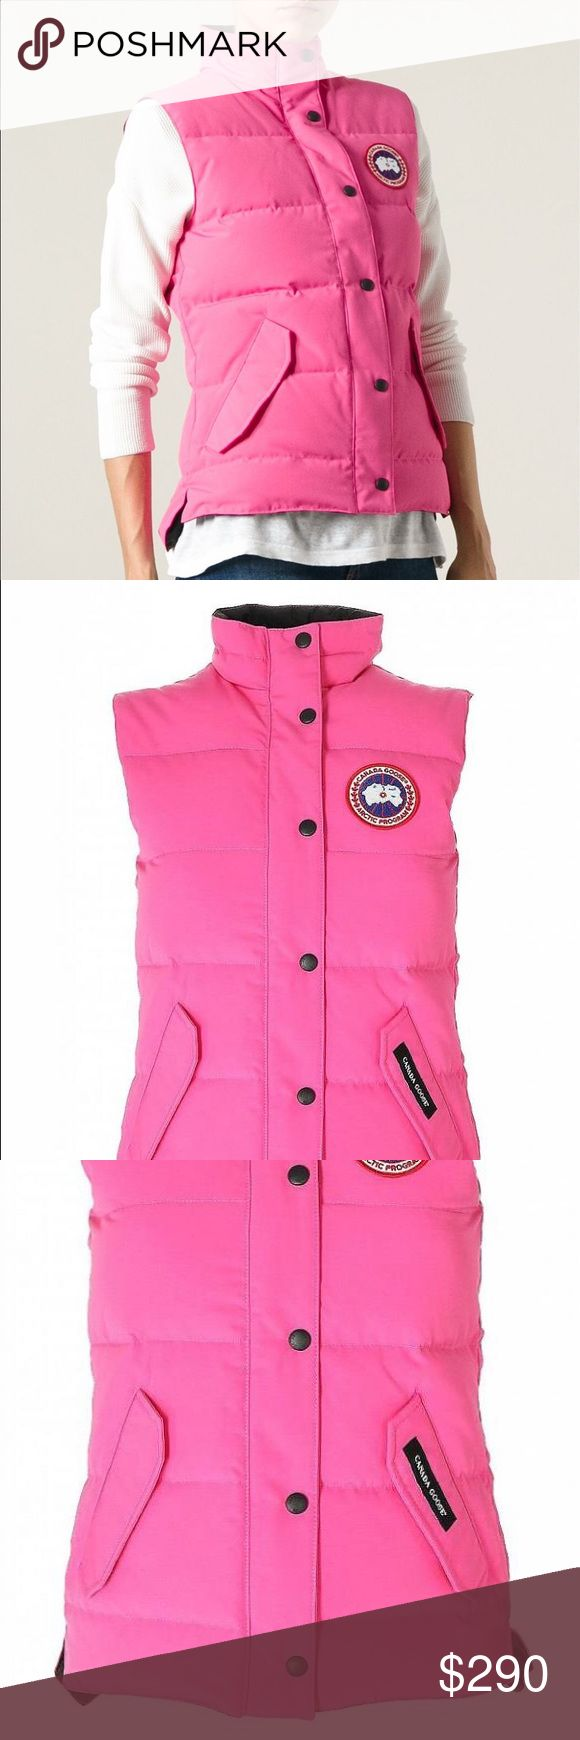 Canada Goose Freestyle Vest (pink) Size medium. Only worn a few times. Excellent condition Canada Goose Jackets & Coats Vests